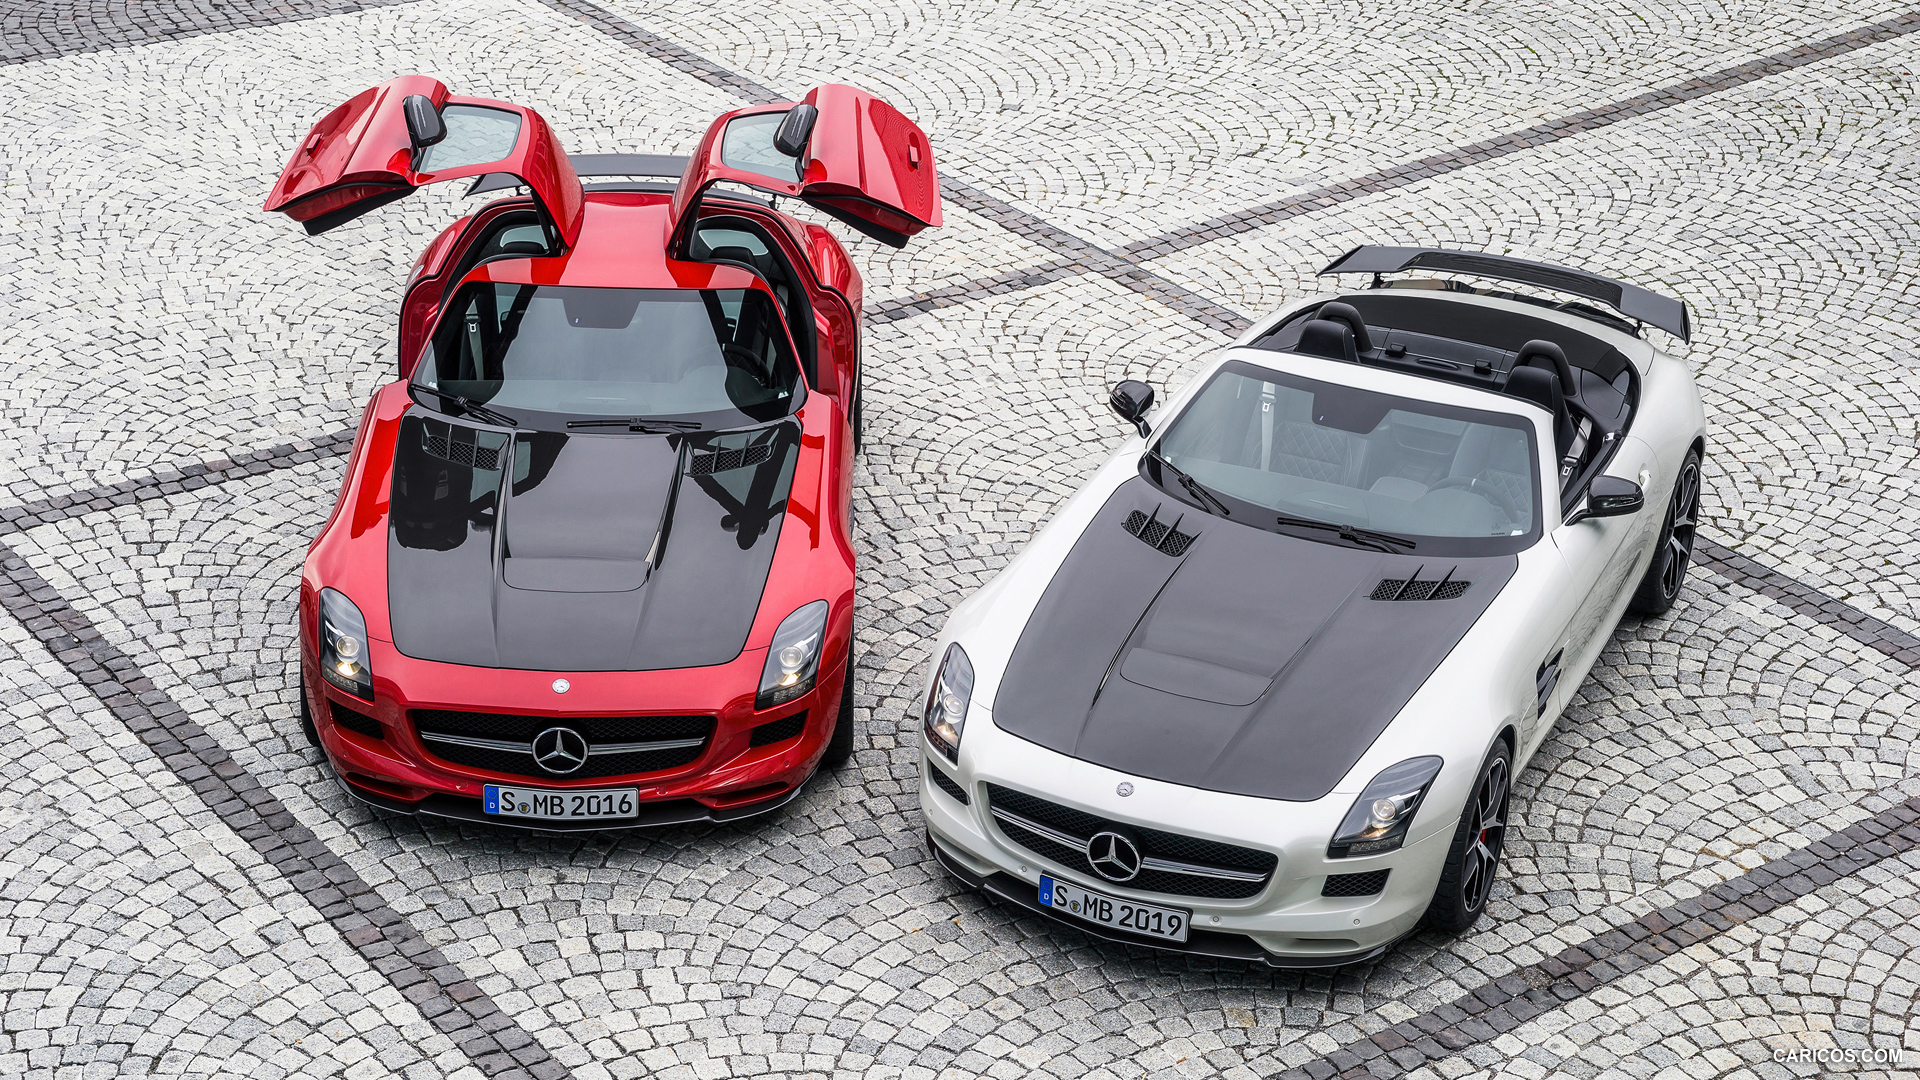 2015 Mercedes-Benz Sls Amg Gt Final Edition #4